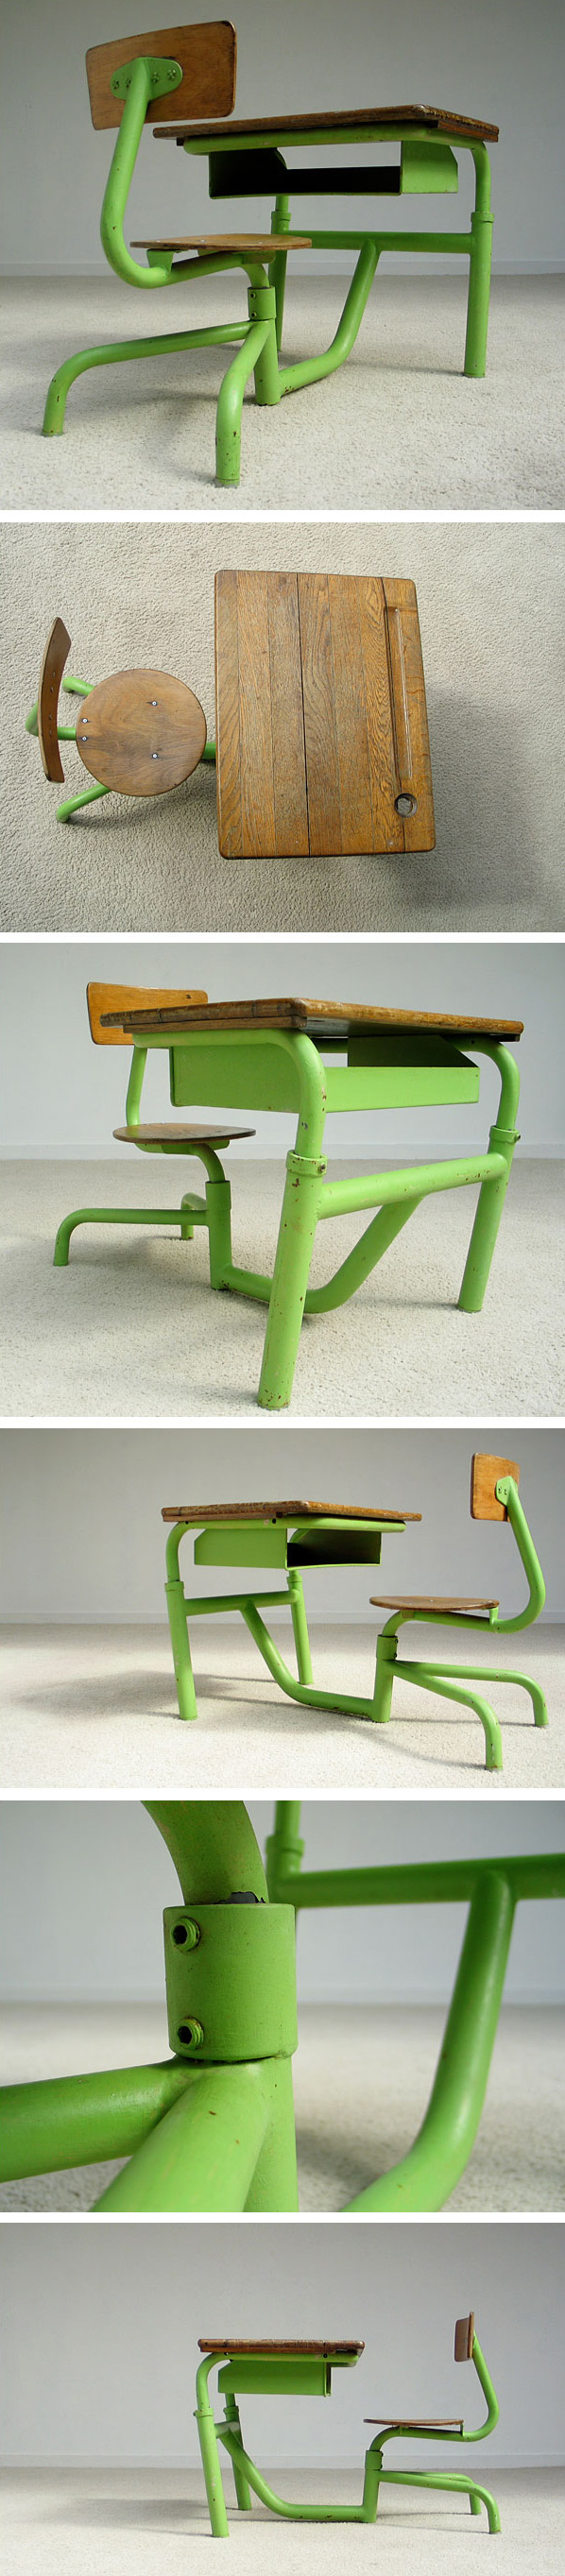 Single seat school desk Jean Prouve 1950 Large